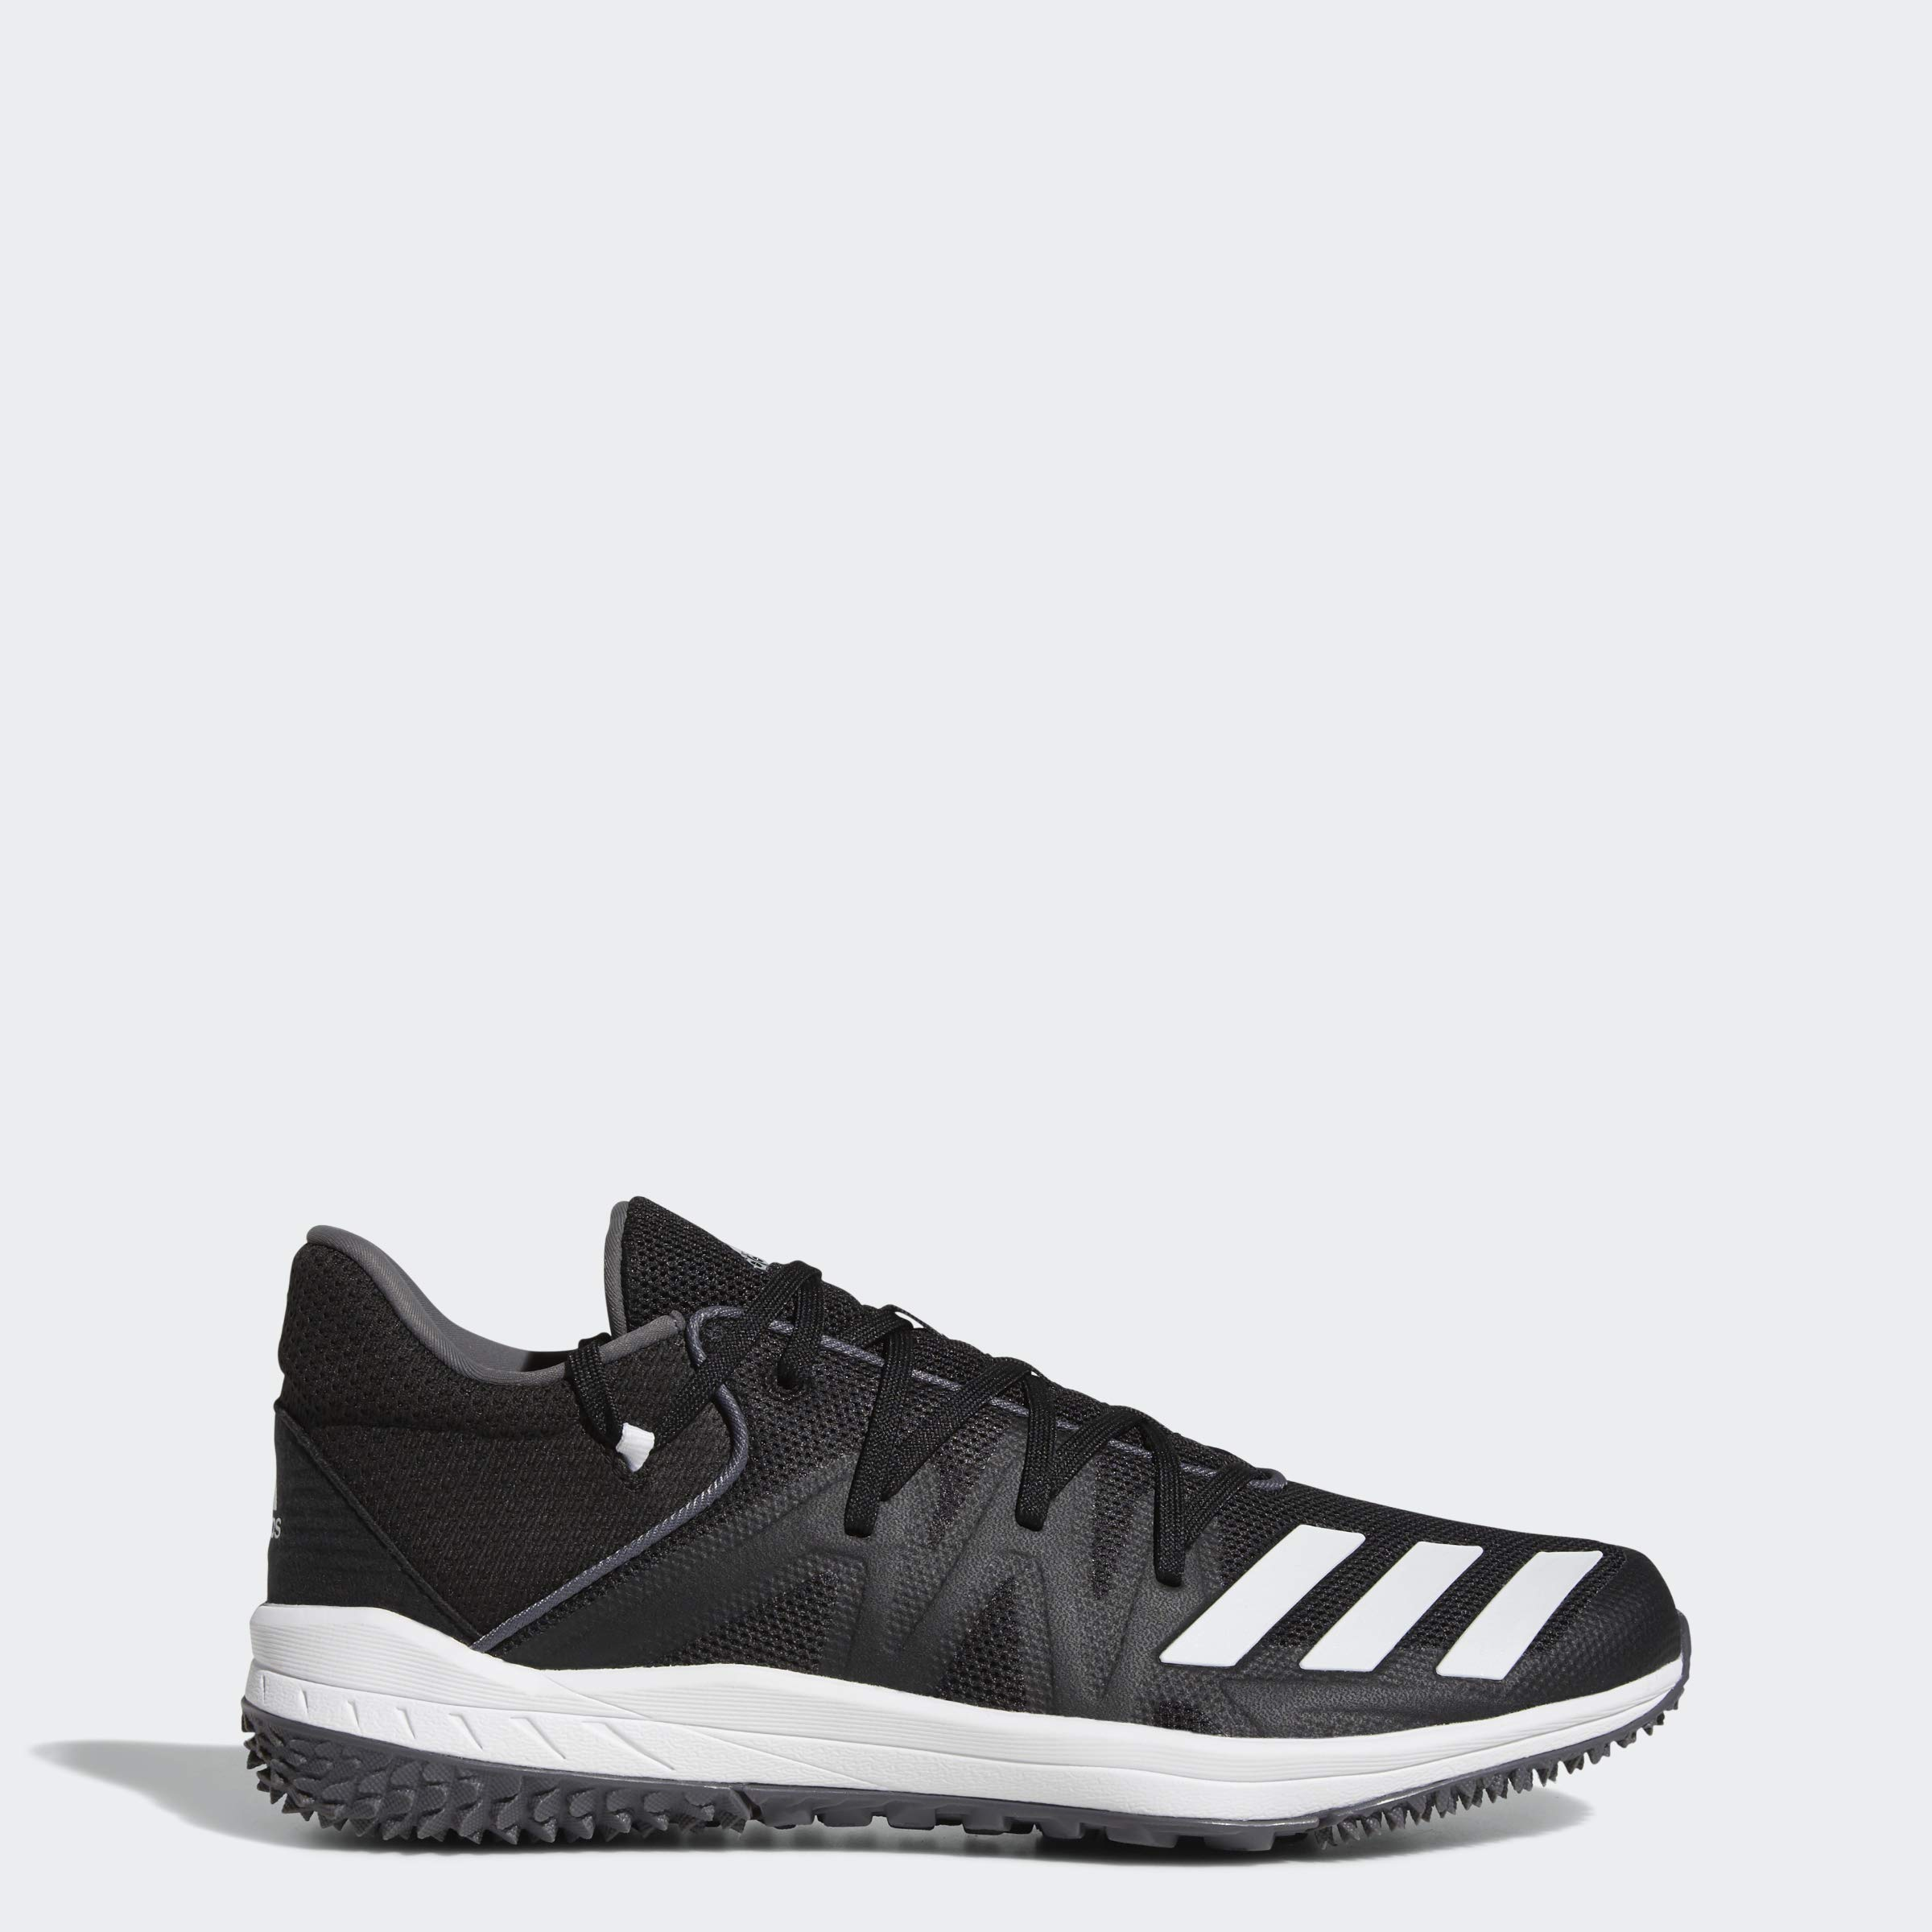 adidas Men's Speed Turf Sneaker